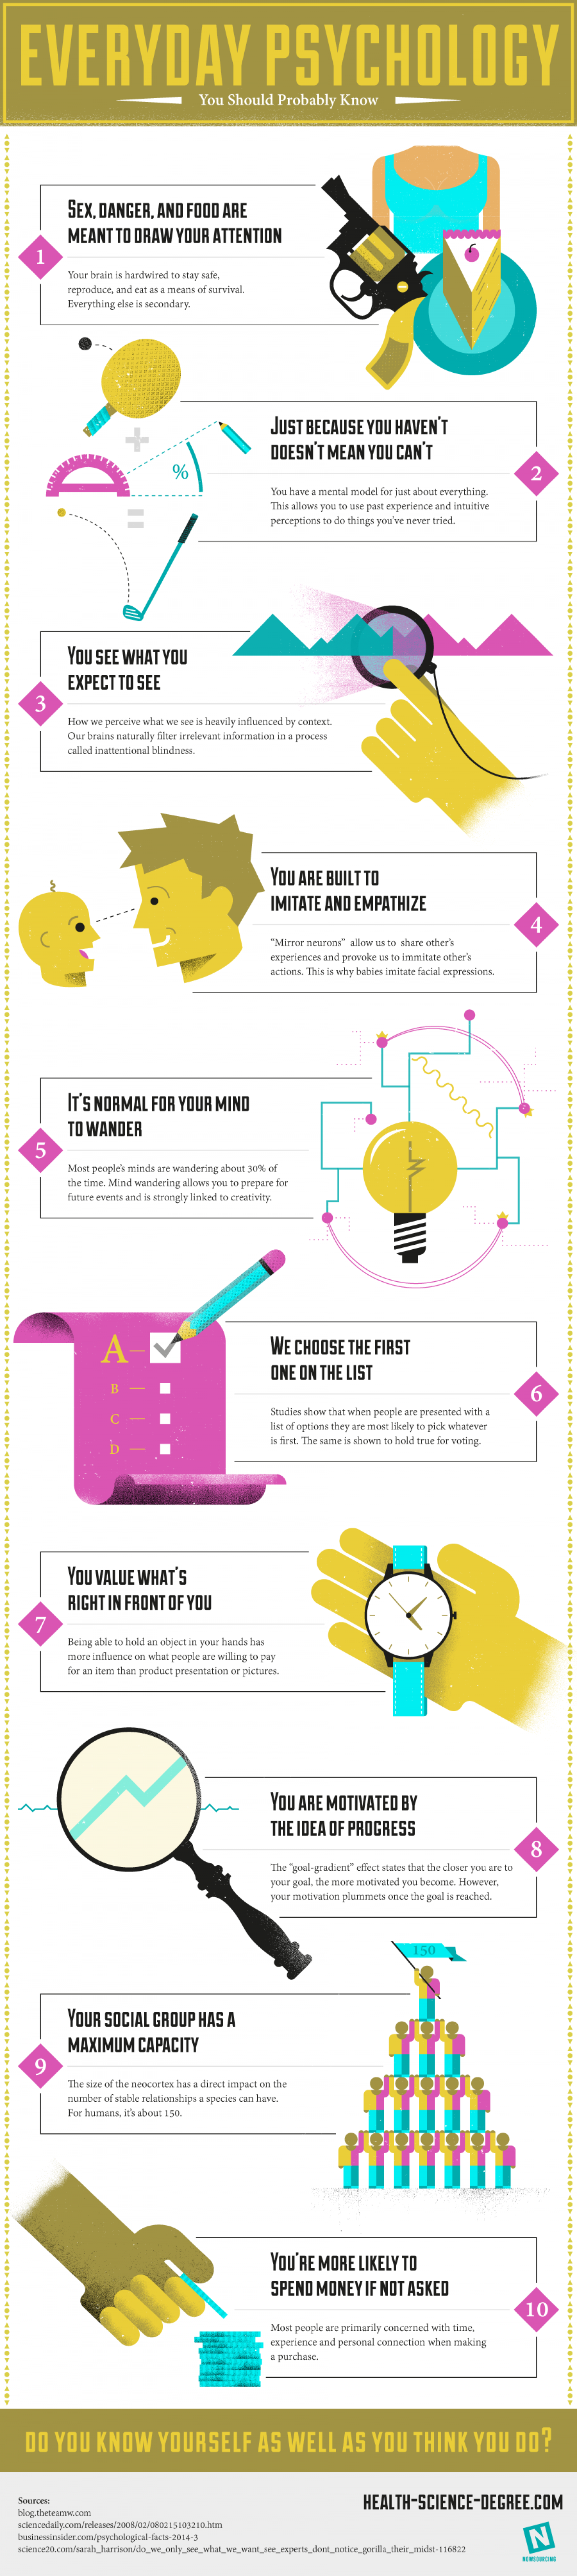 Everyday Psychology You Should Probably Know Infographic